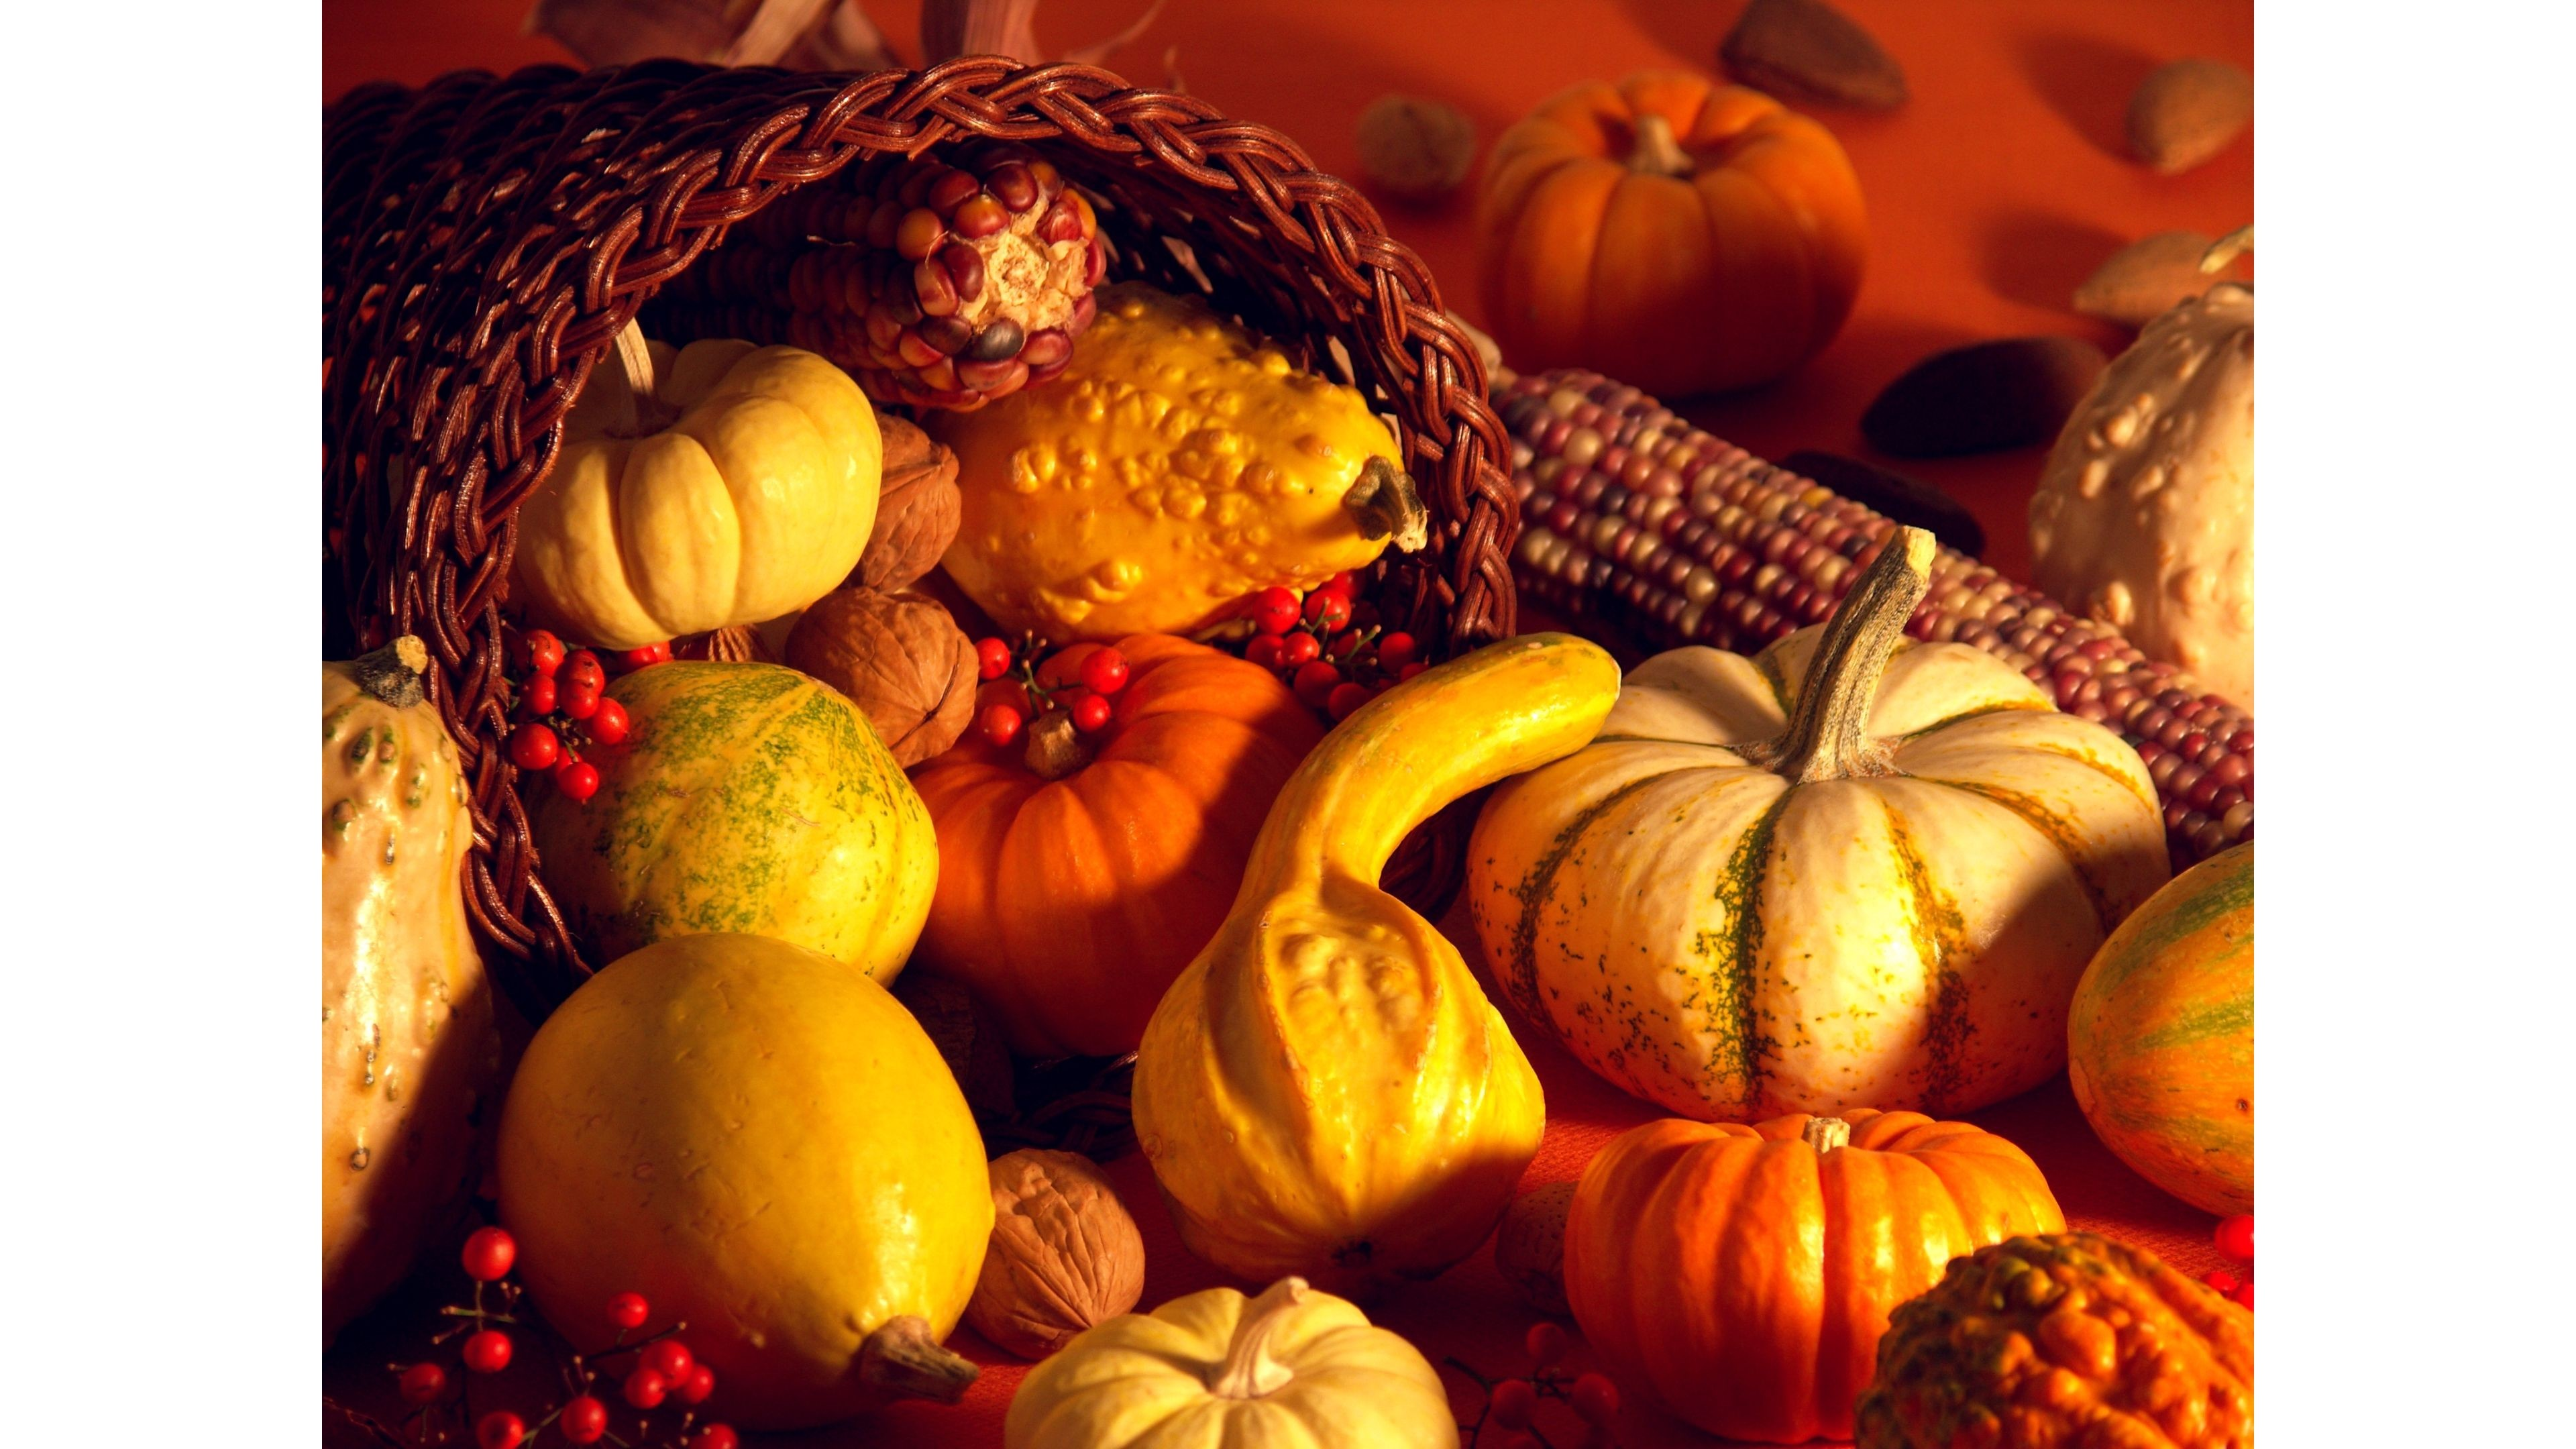 Res: 3840x2160, 2016 Thanksgiving 4K Wallpapers